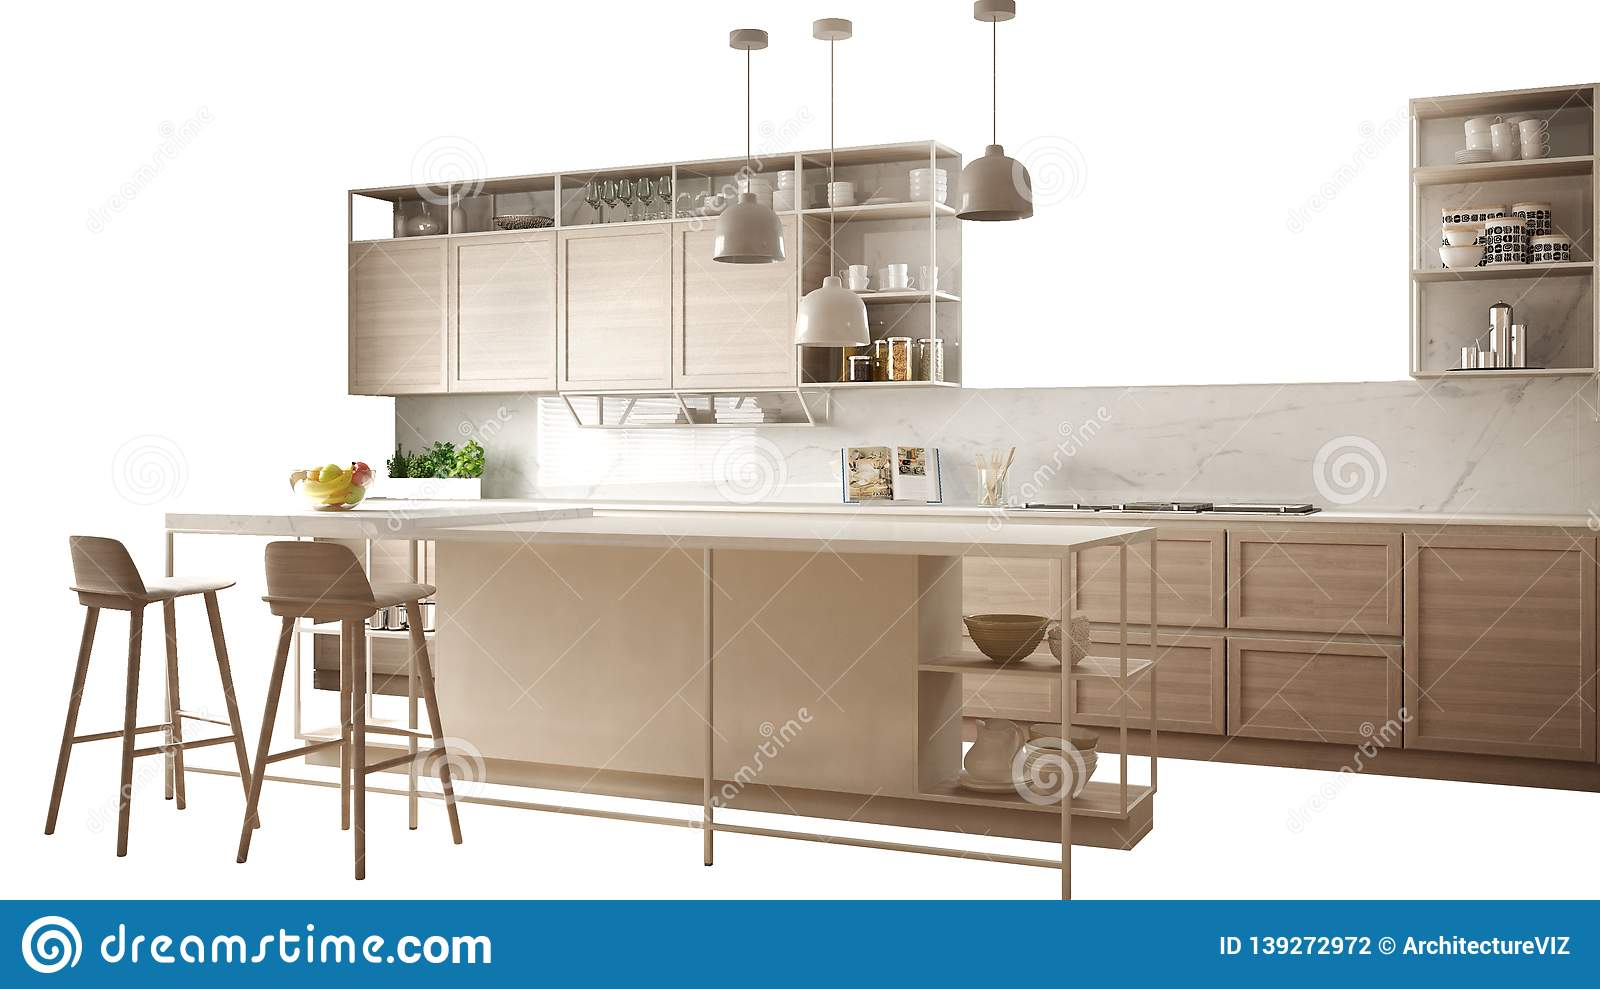 Kitchen Island Design Template Modern White Kitchen With Wooden Details Island With Stools